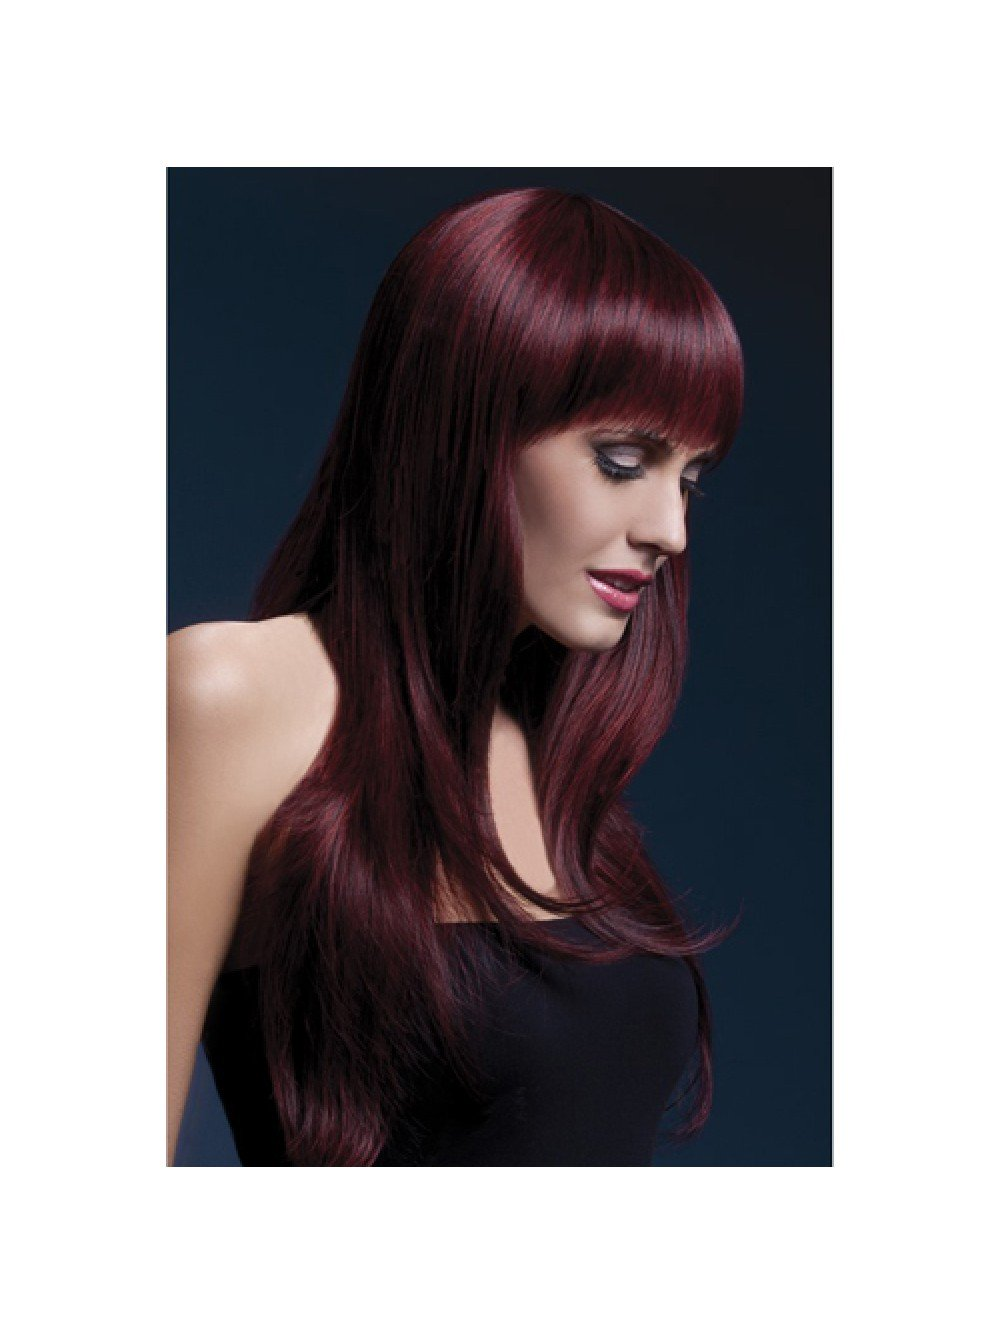 Fever Sienna Wig 26inch/66cm Black Cherry Long Feathered with Fringe